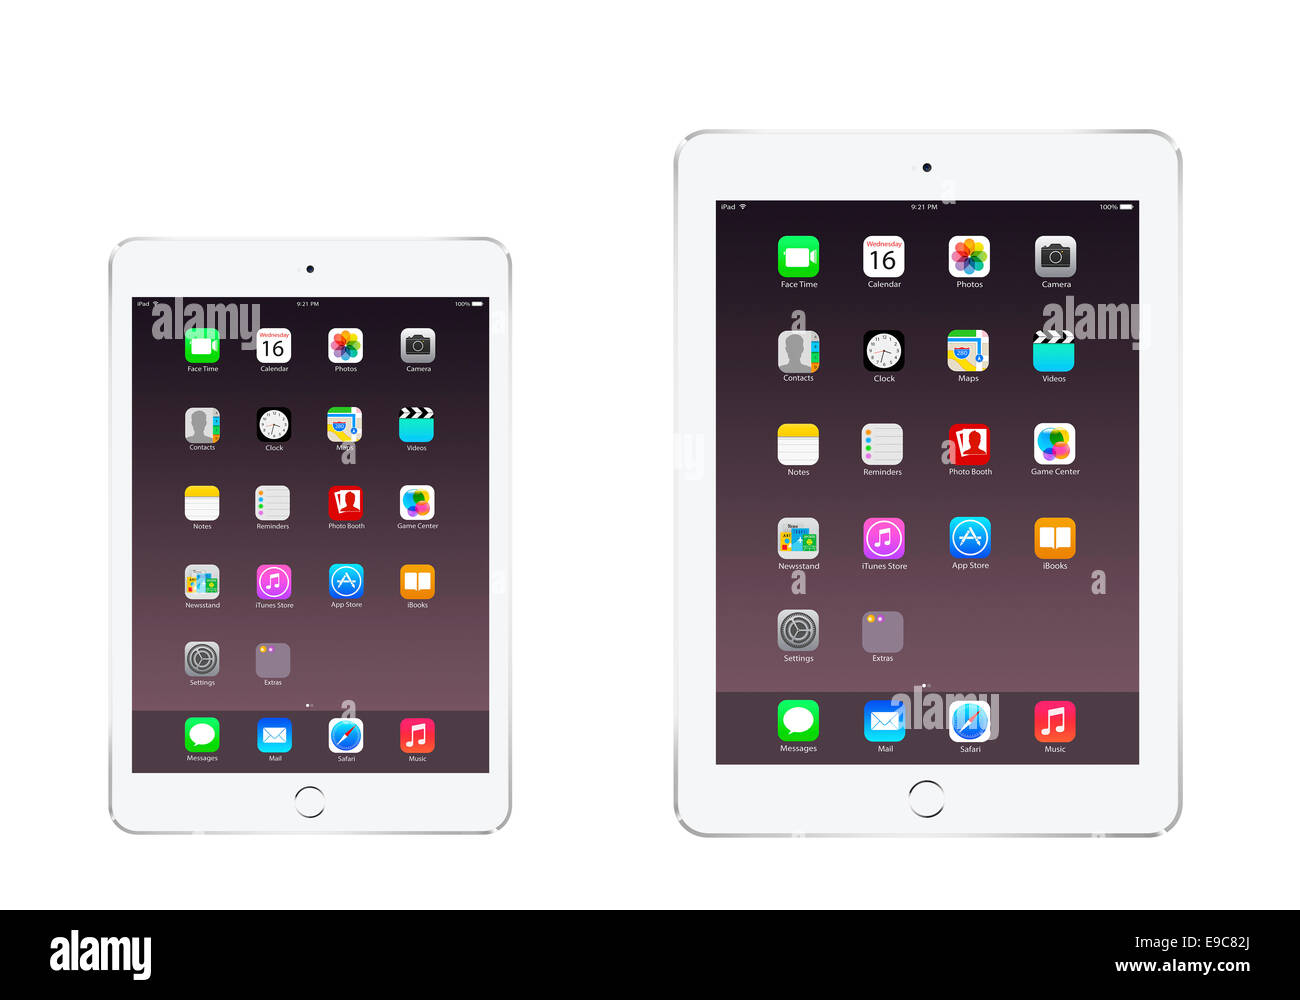 Tablets iPad mini 3 iPad air 2 silver with apps, digitally generated artwork. - Stock Image